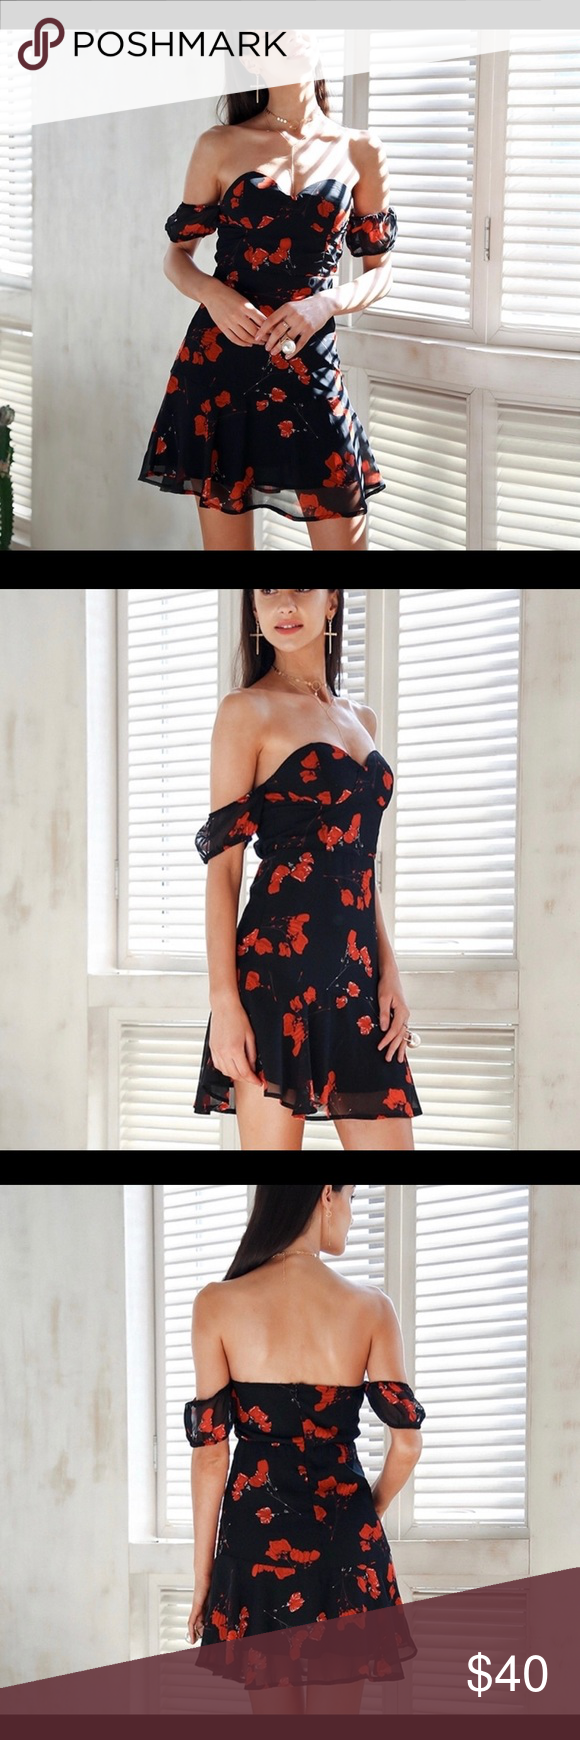 Red And Black Dress Black Dress With Red Flowers Comes With Clear Straps If You Wanted To Wear Straps Dresses Midi Dresses Clothes Design Black Dress [ 1740 x 580 Pixel ]